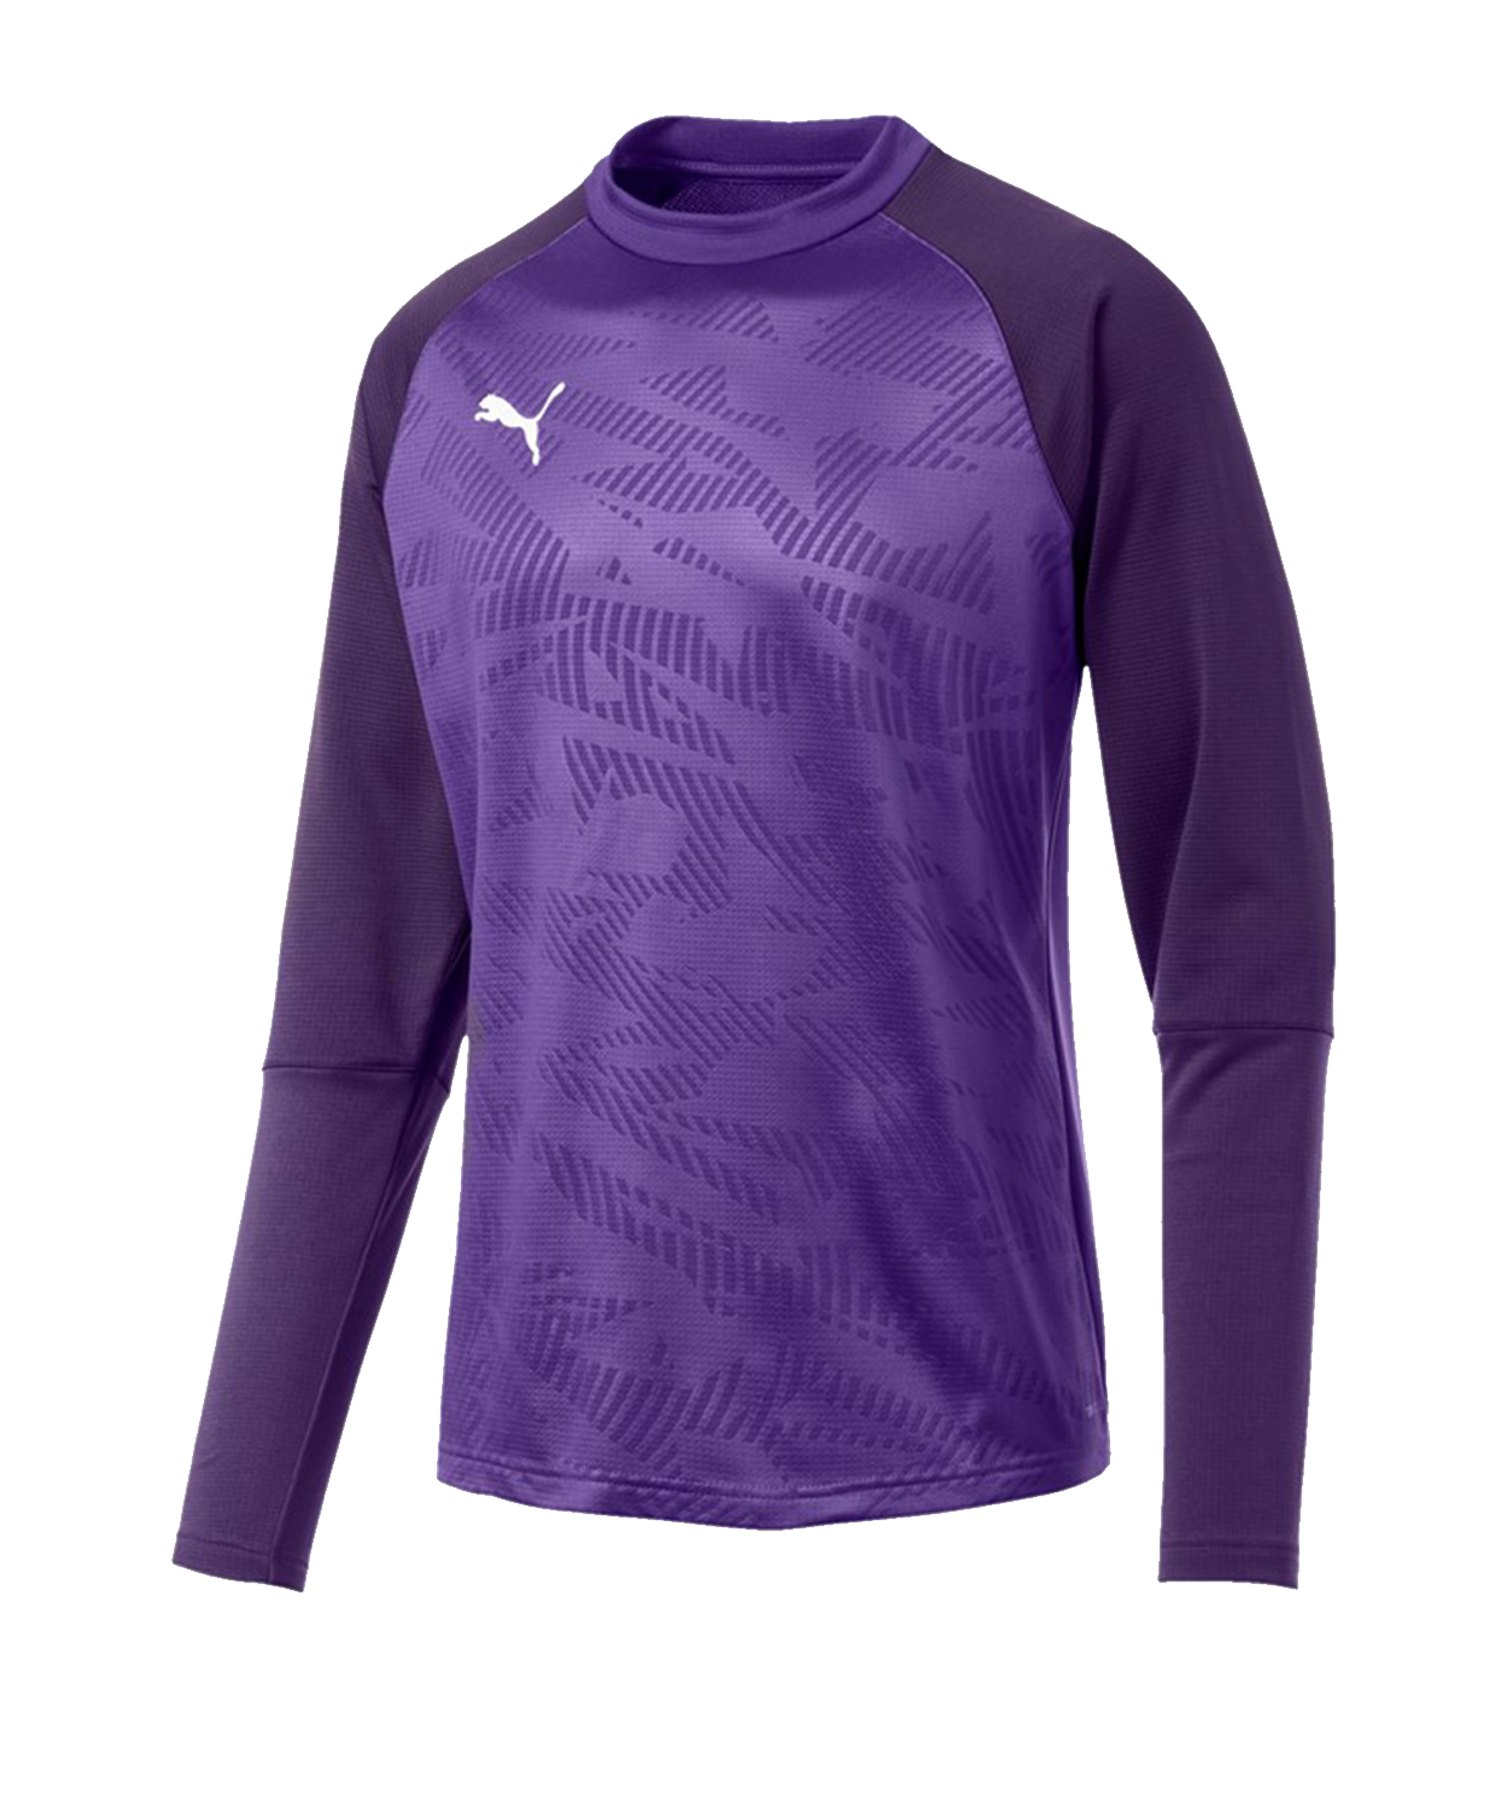 PUMA CUP Training Core Sweatshirt Lila F10 - lila